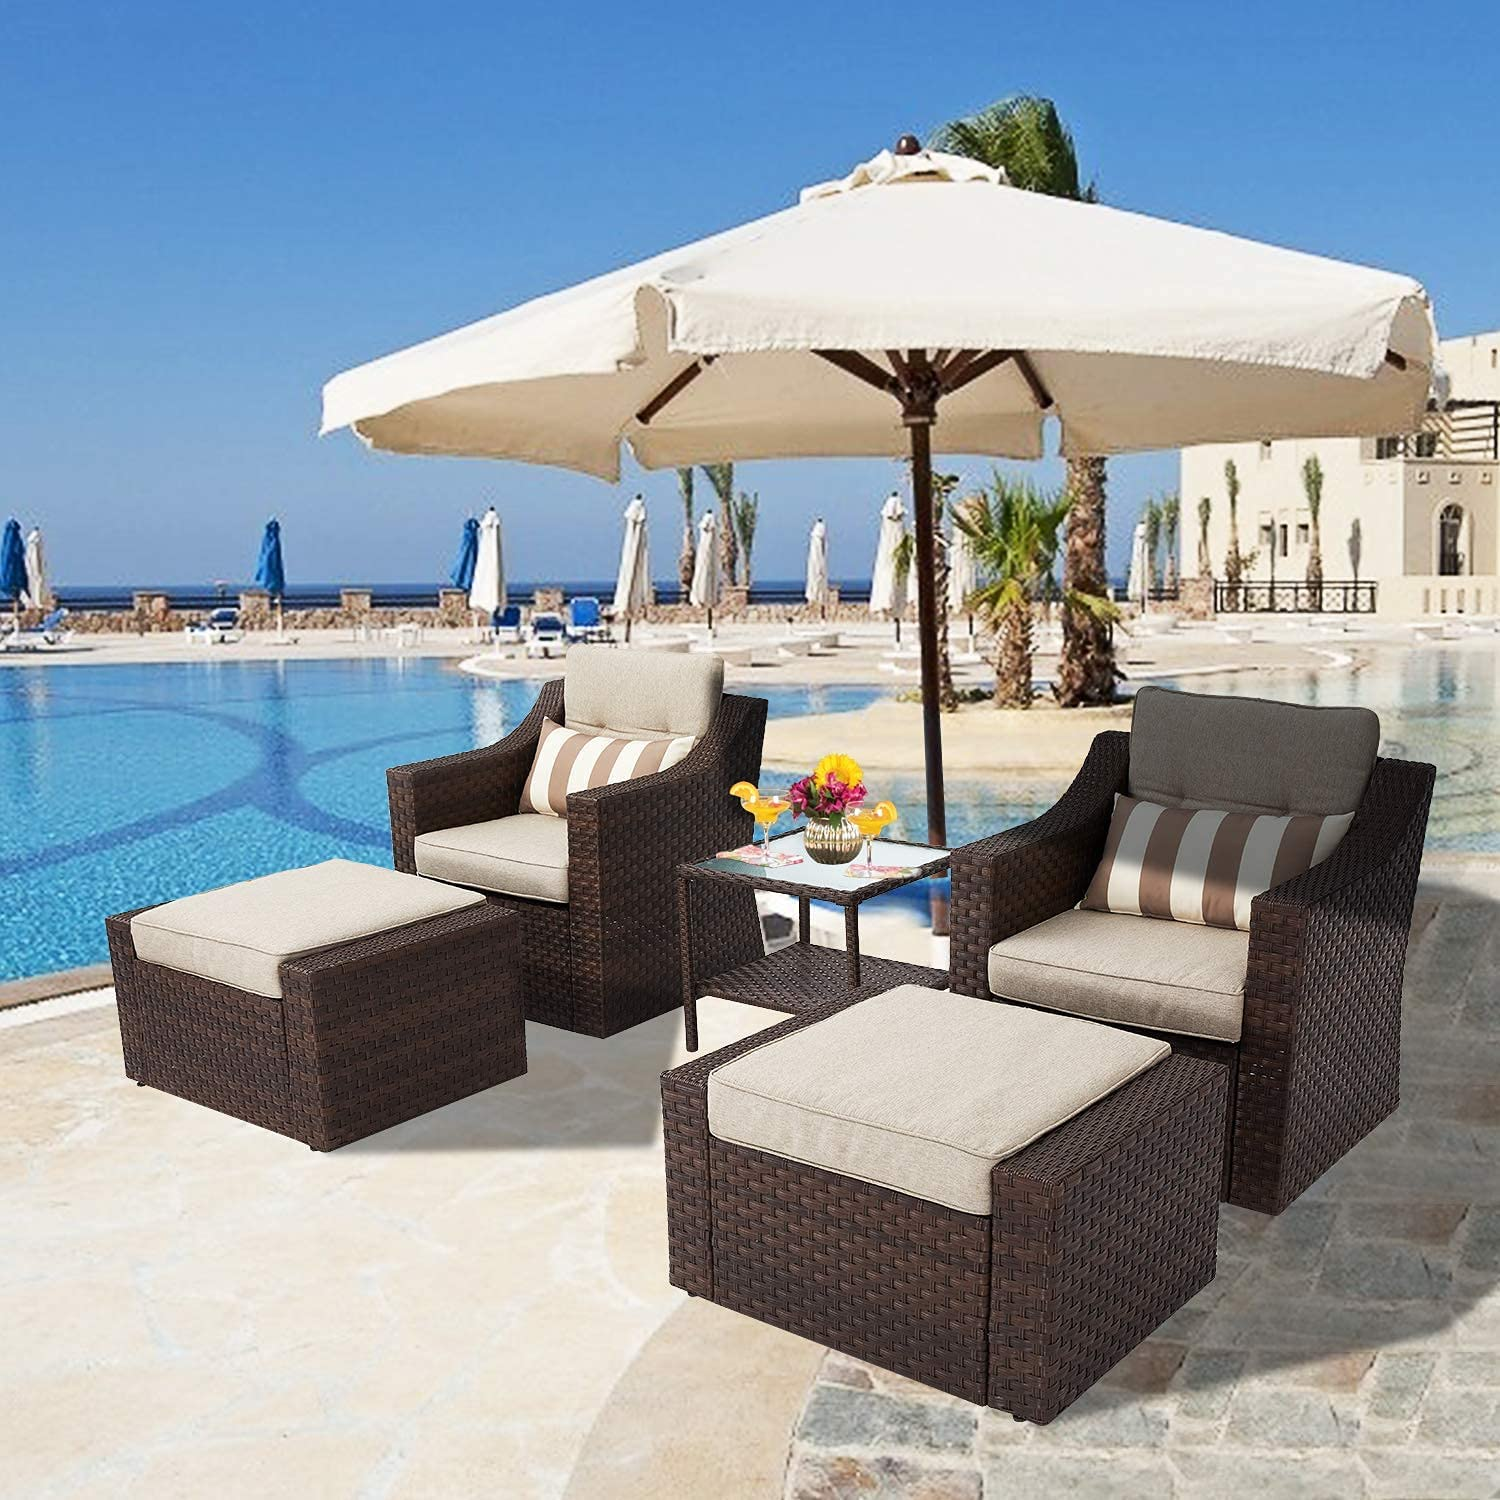 SUNCROWN 5-Piece Patio Furniture Nashville-Davidson Mall All-Weather Lounge Lowest price challenge Outdoor Set